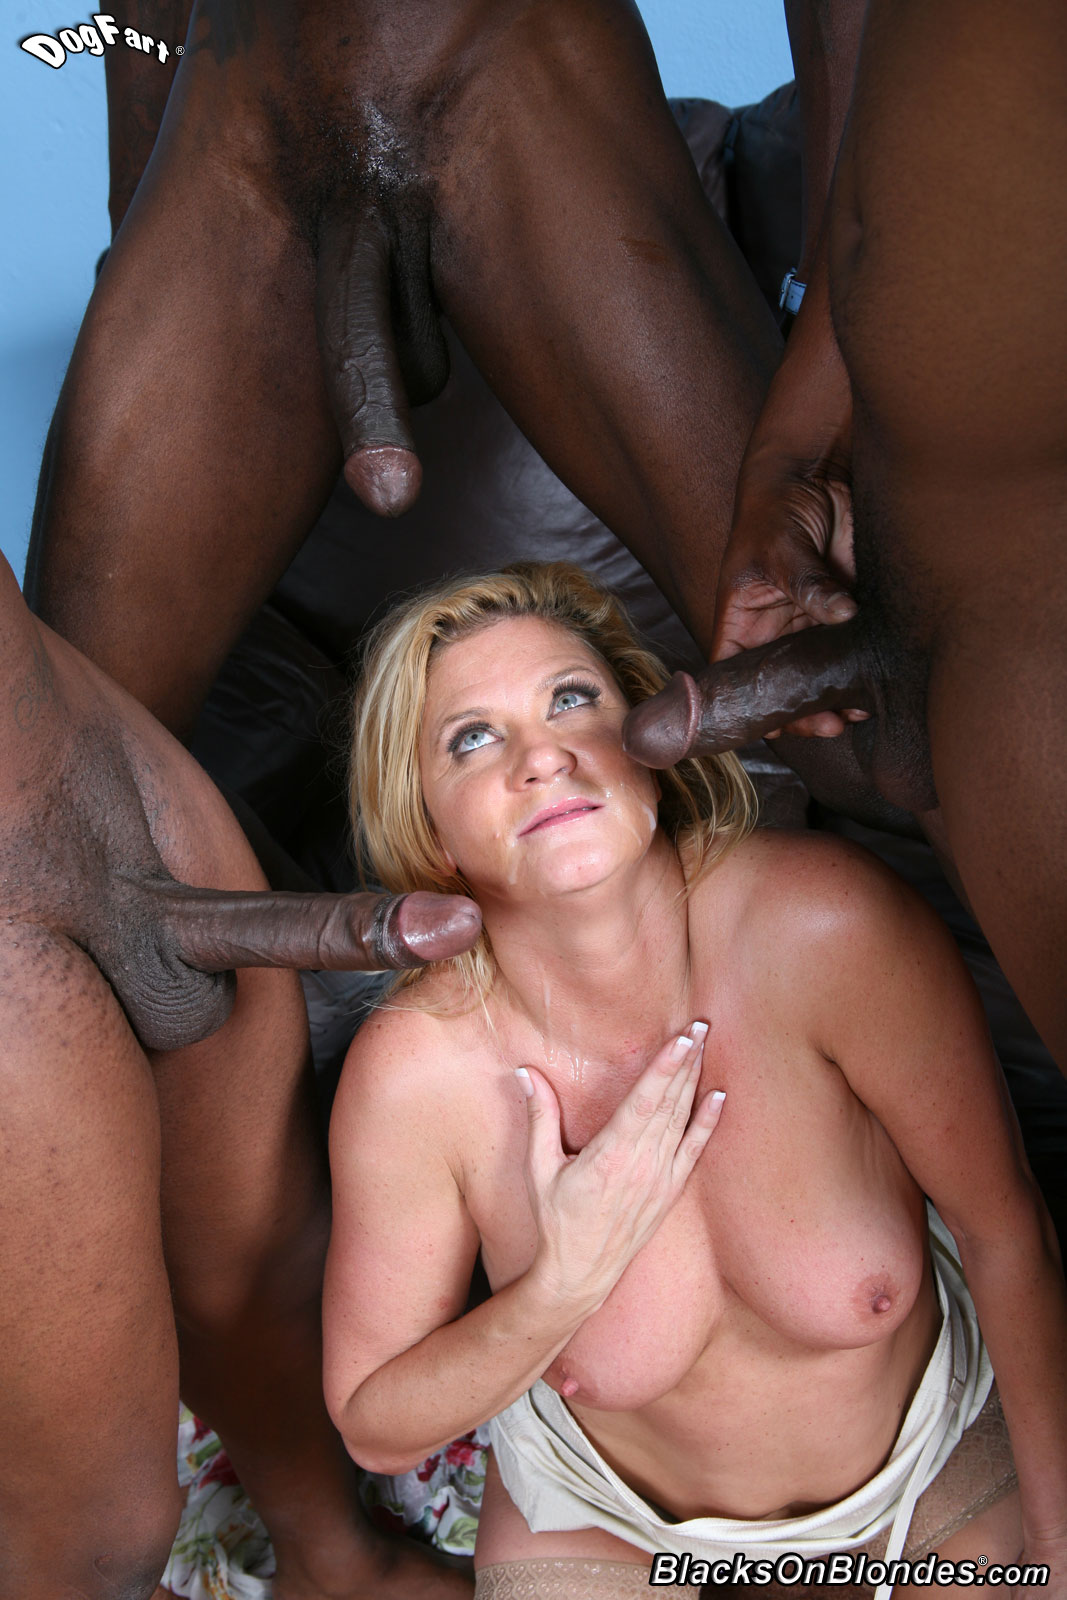 Blacks on blondes anal gangbang